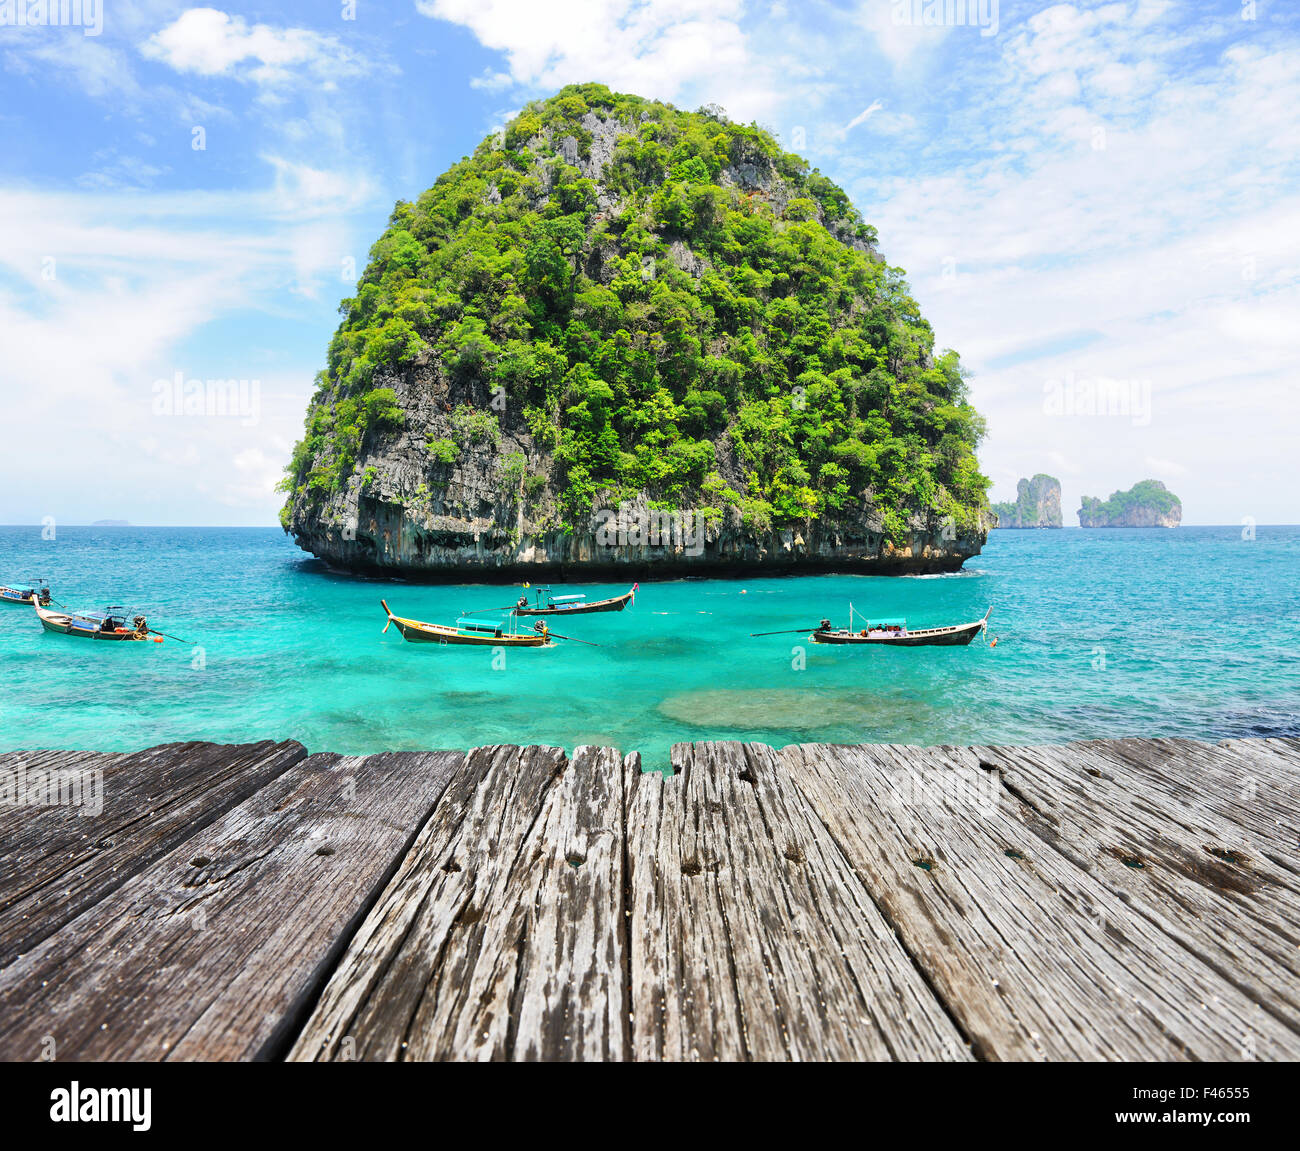 Uninhabited island - Stock Image